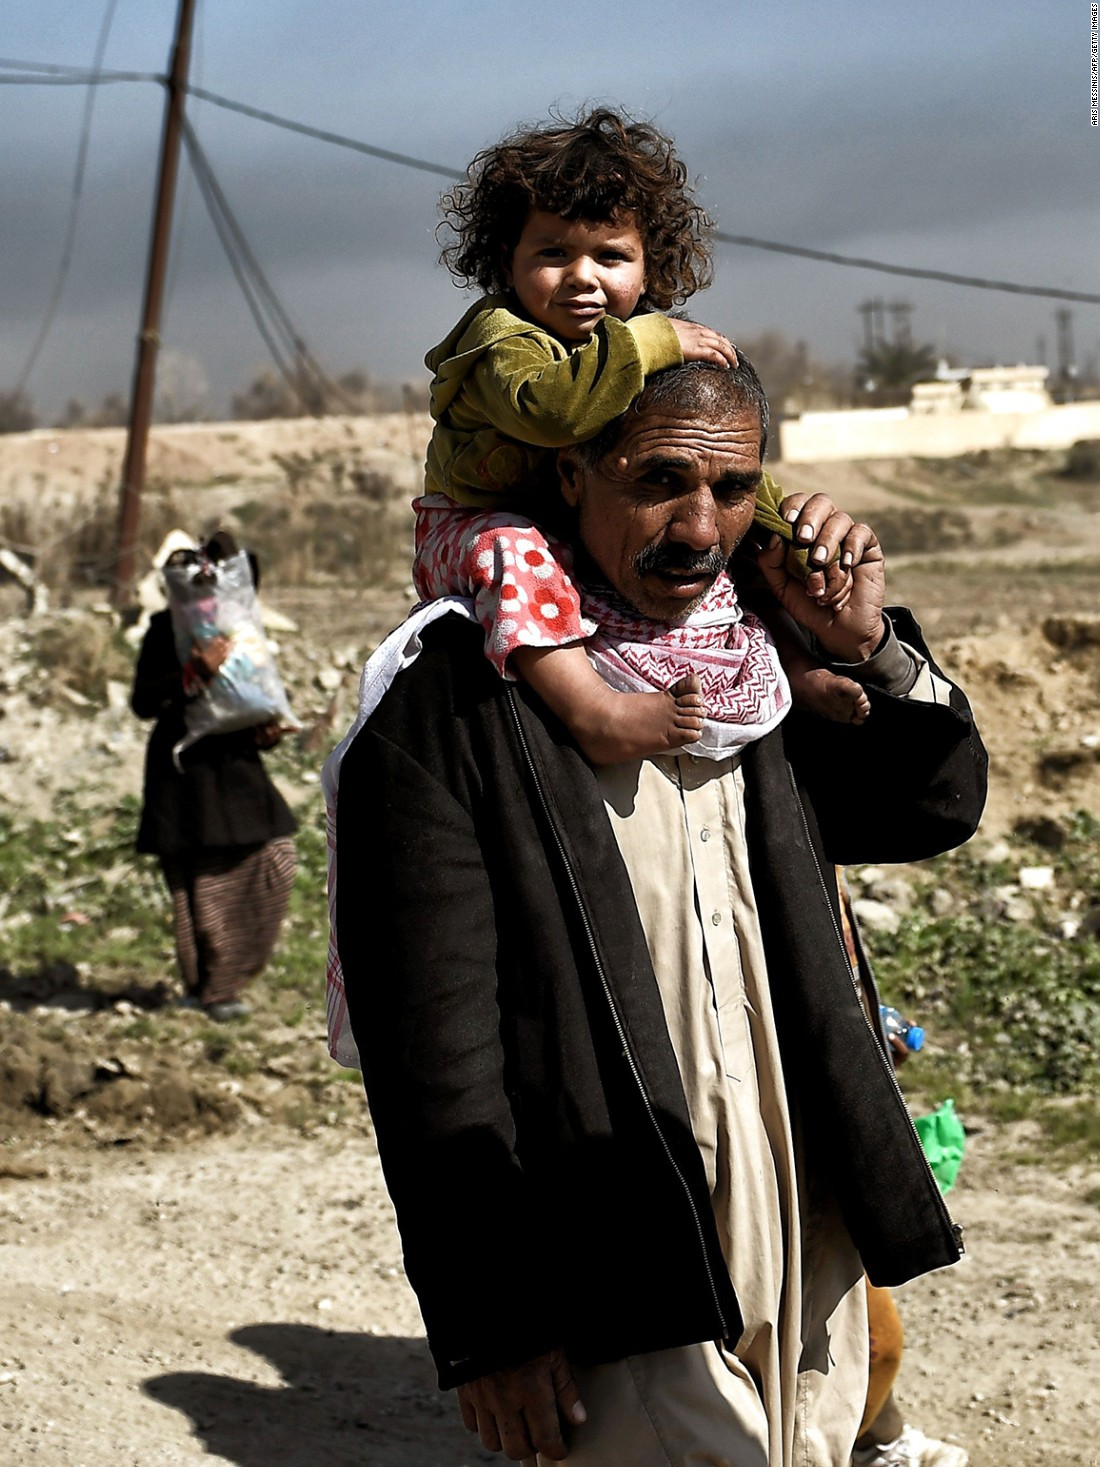 300,000: Mosul's displaced